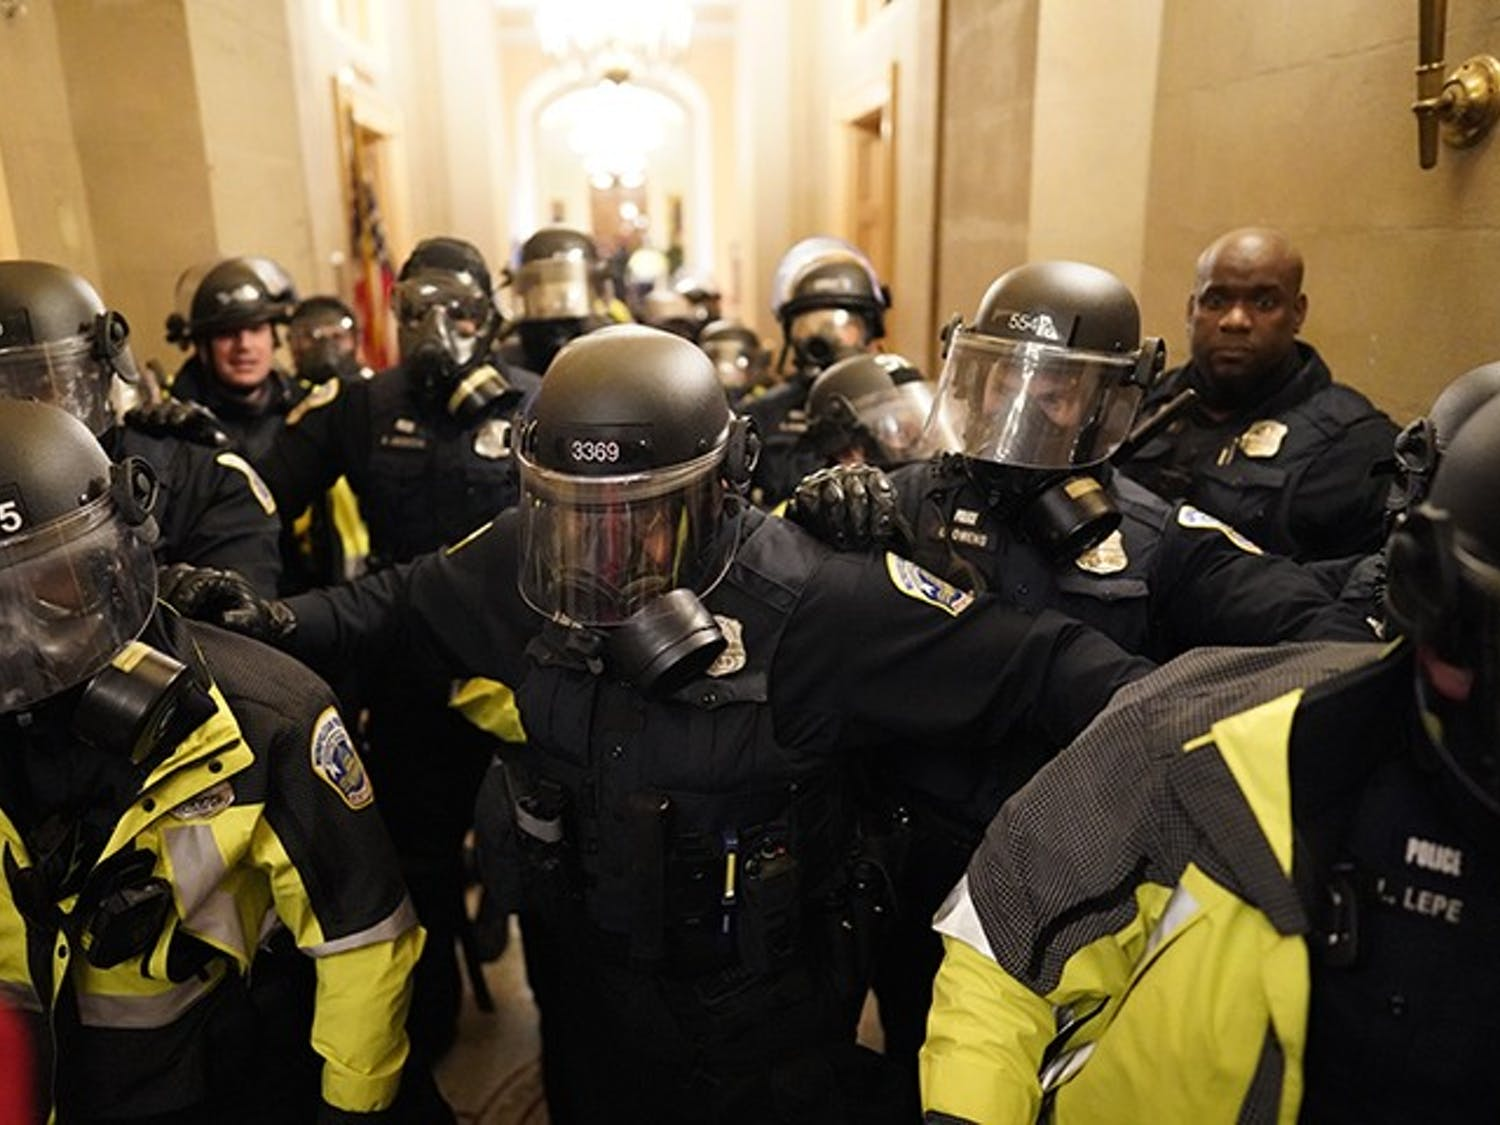 Riot police enter the hallway inside the Capitol building on Jan. 6, 2021.